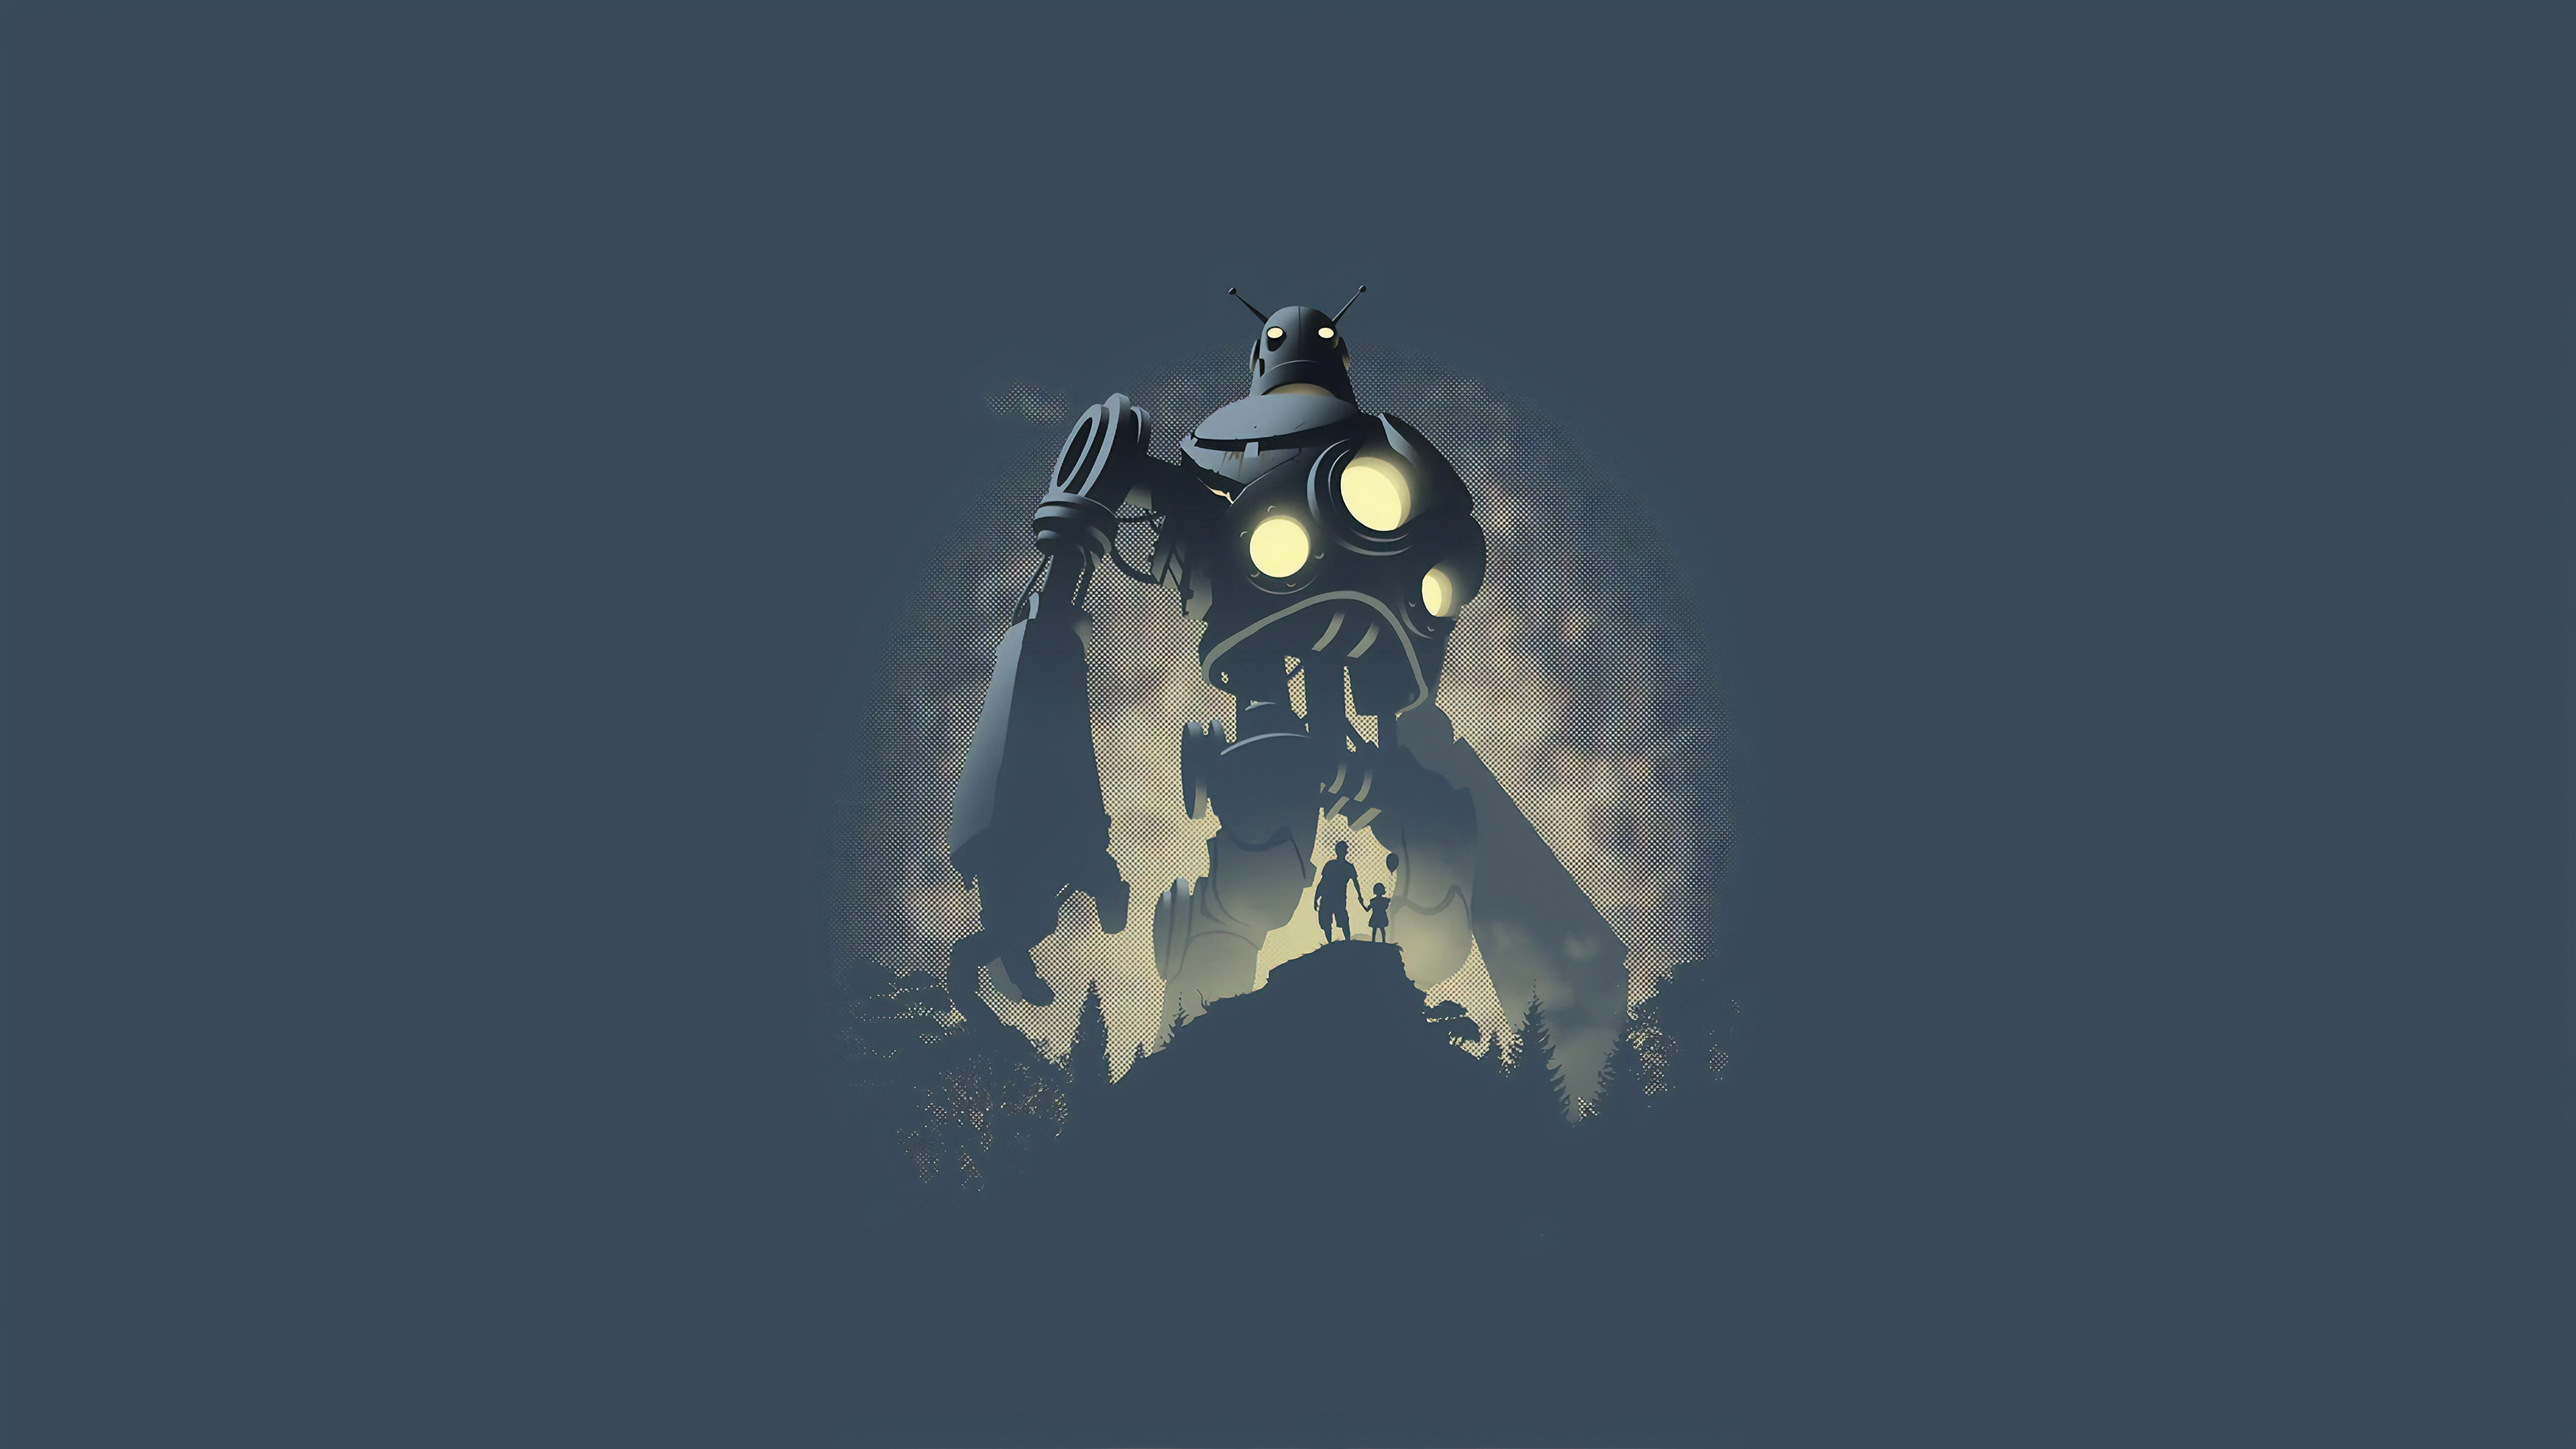 the iron giant 1563222045 - The Iron Giant - the iron giant wallpapers, minimalism wallpapers, hd-wallpapers, digital art wallpapers, artwork wallpapers, artist wallpapers, 4k-wallpapers